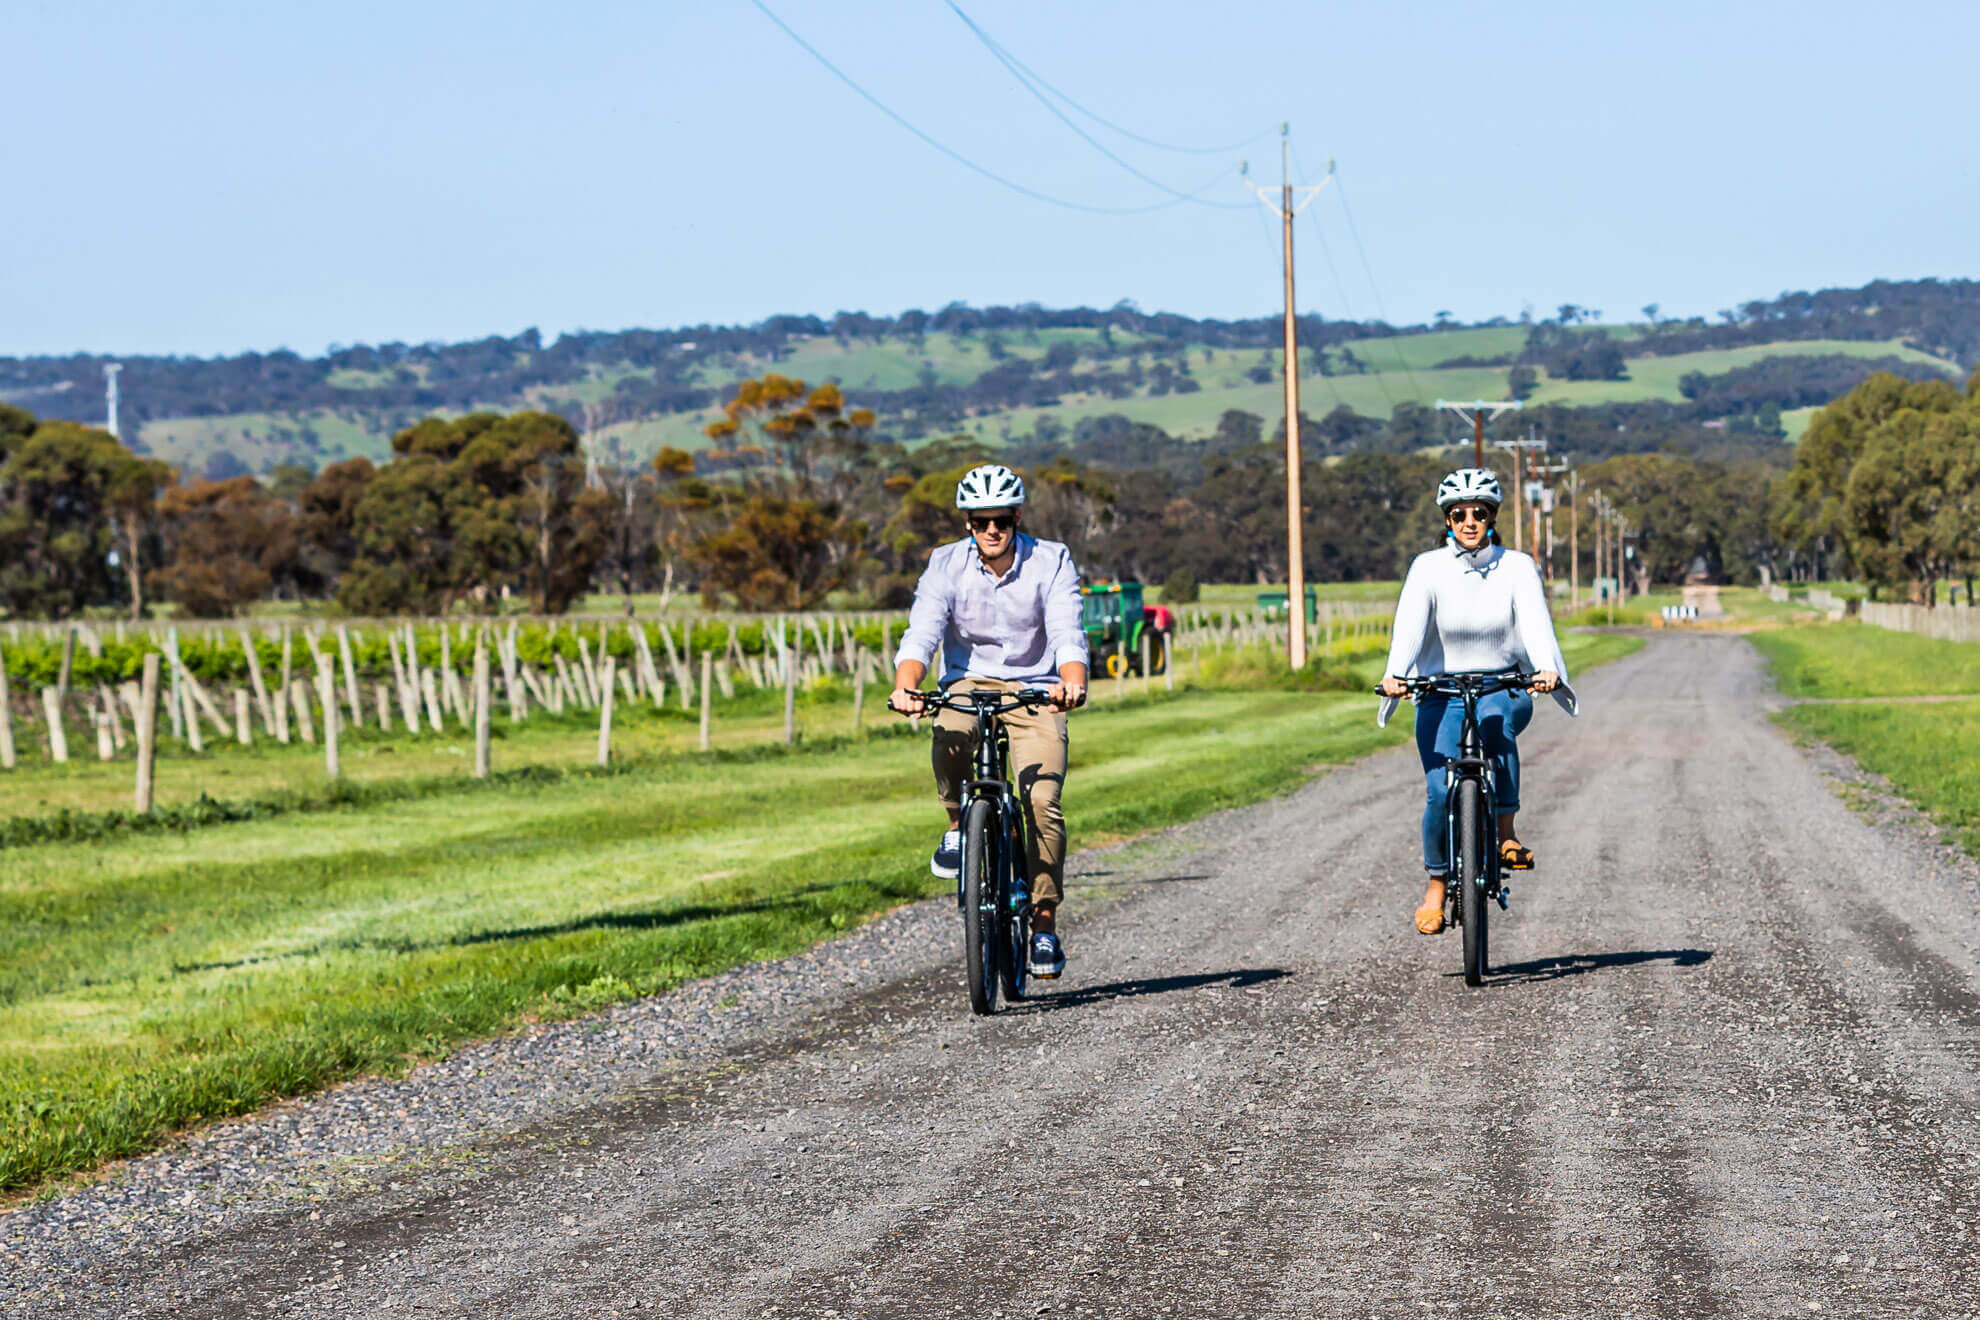 Shiraz Trail on your self-guided eBike Tour in McLaren Vale